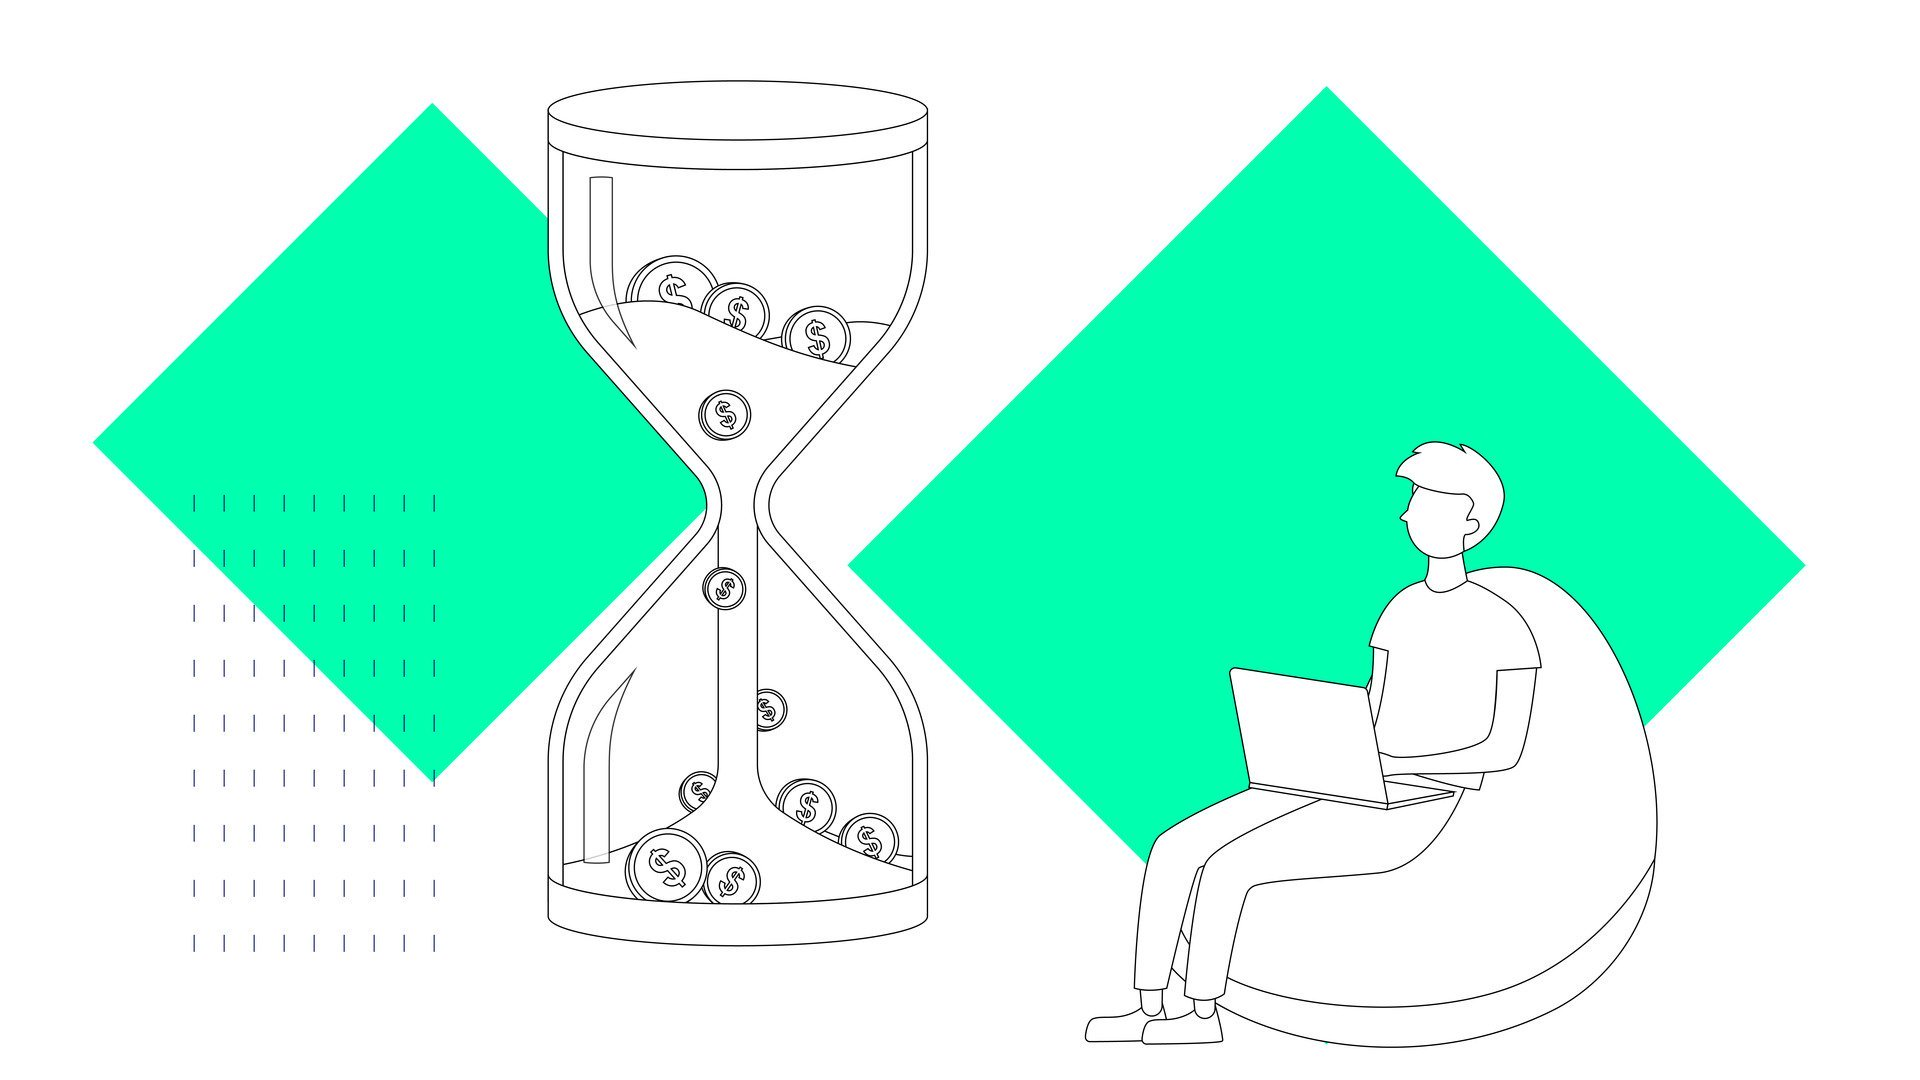 Illustration of a person working on a bean bag looking at a sand timer